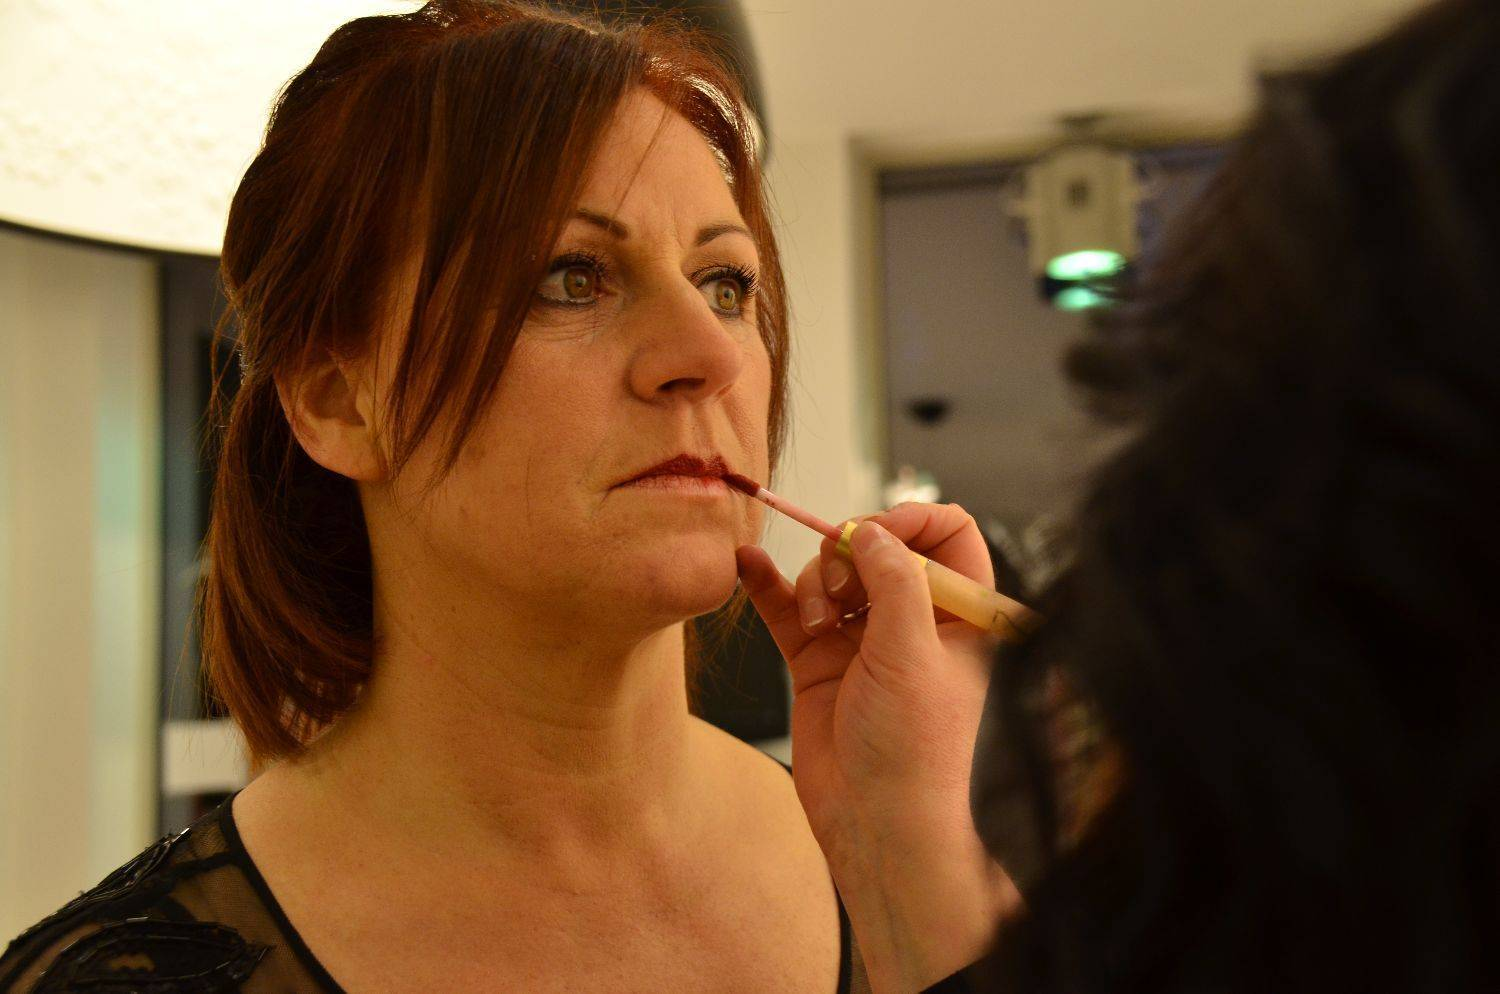 Make-up artist Sybille